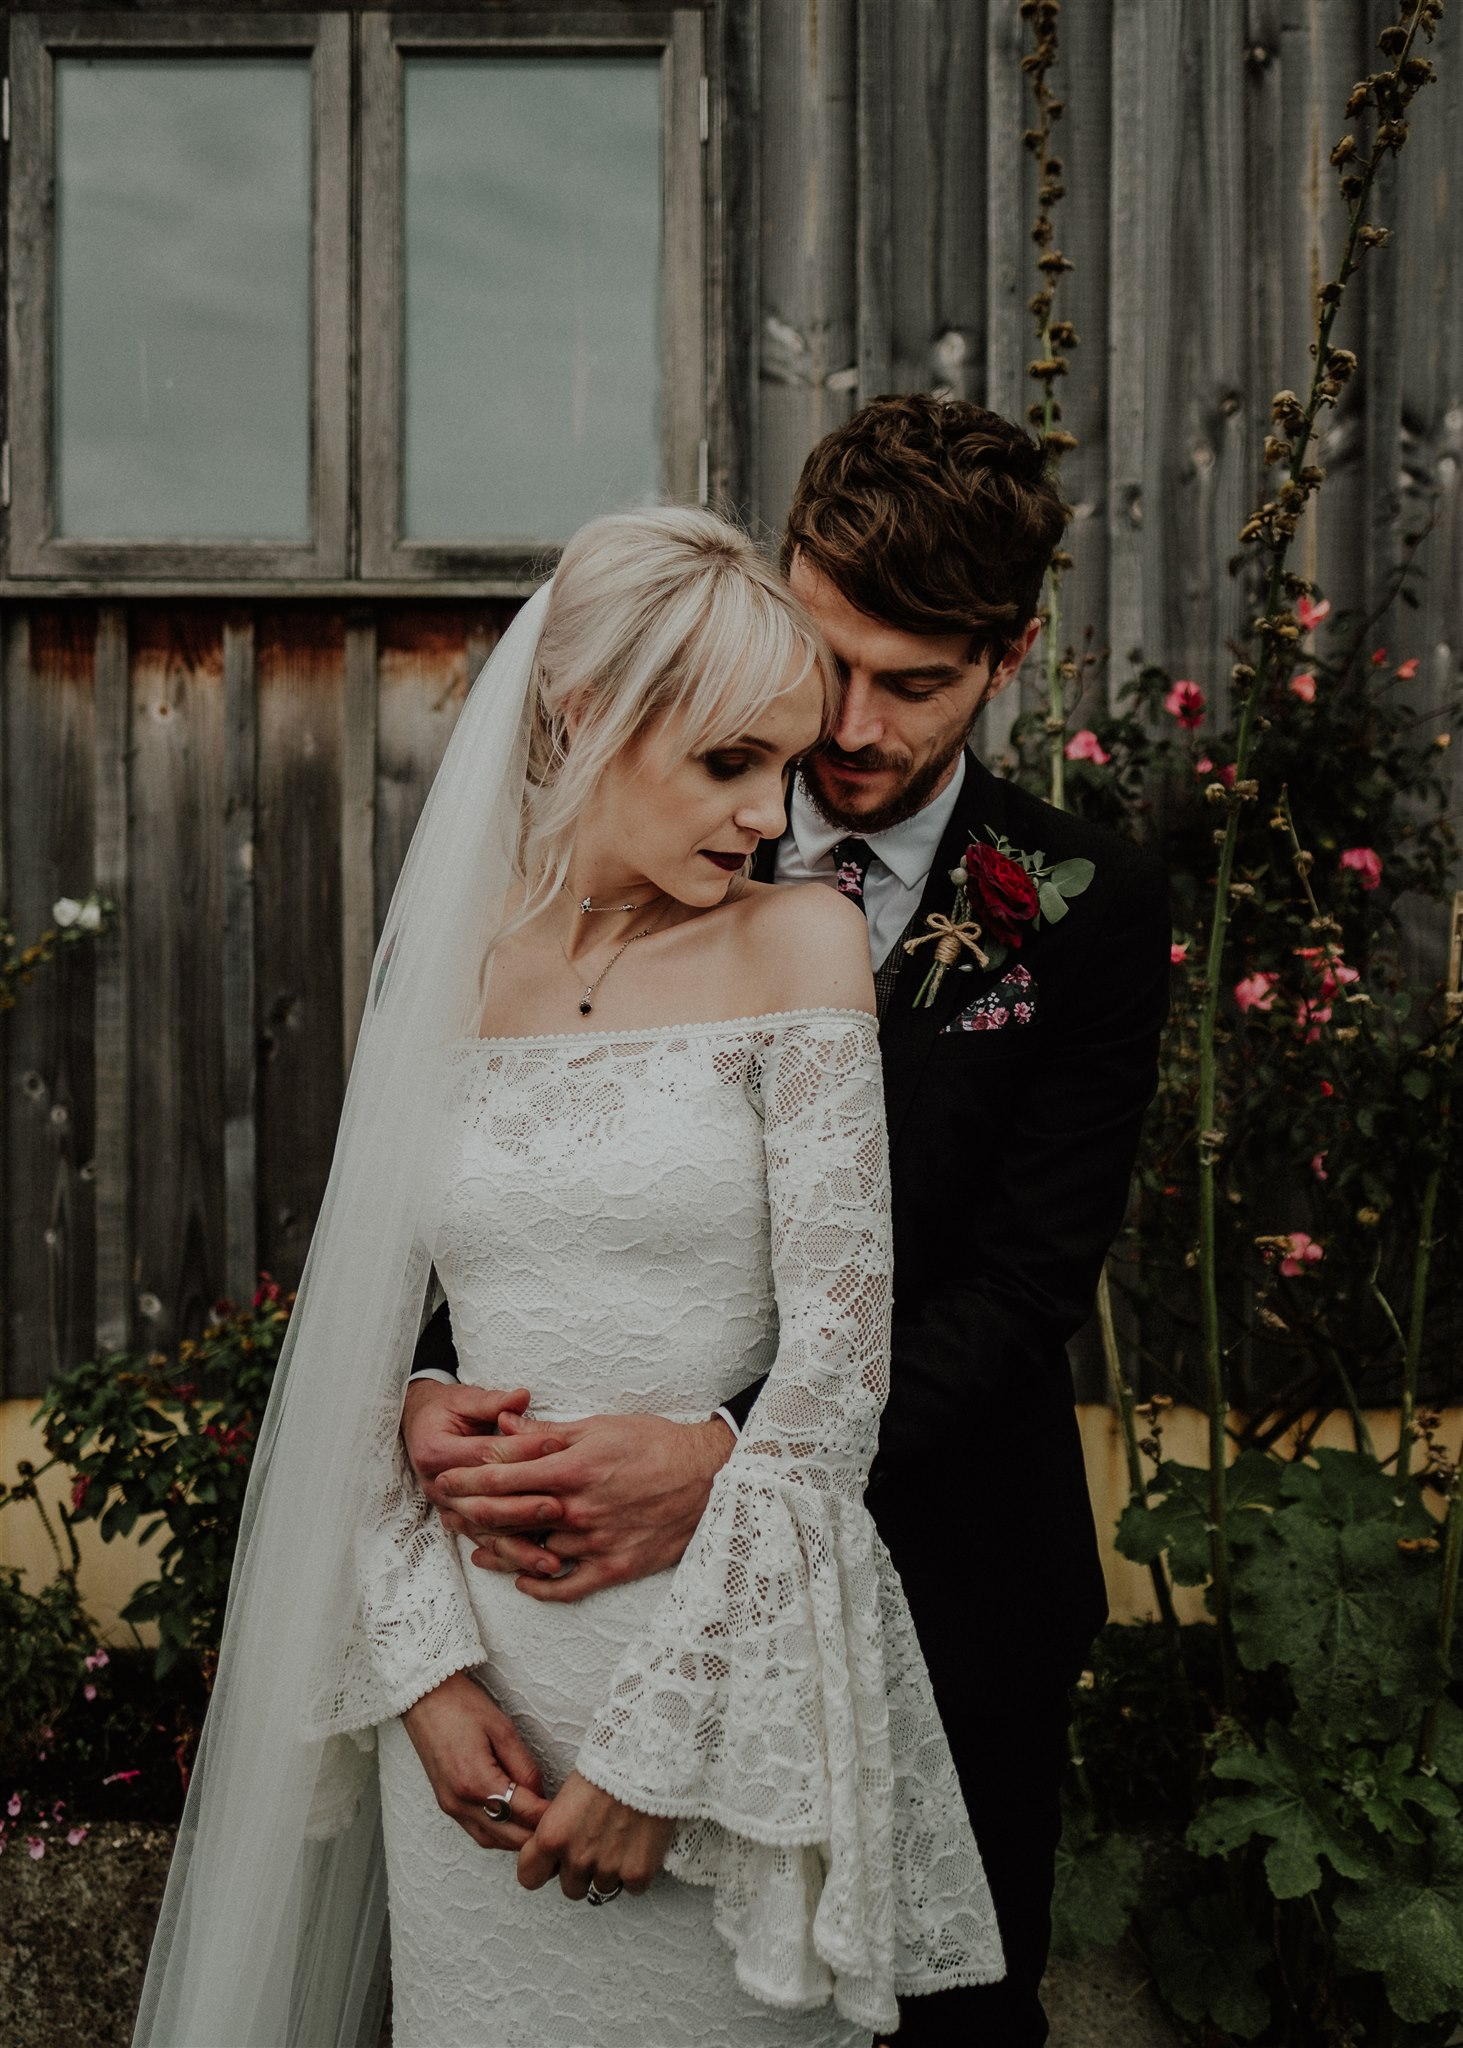 vegan wedding might be quite moody and nice